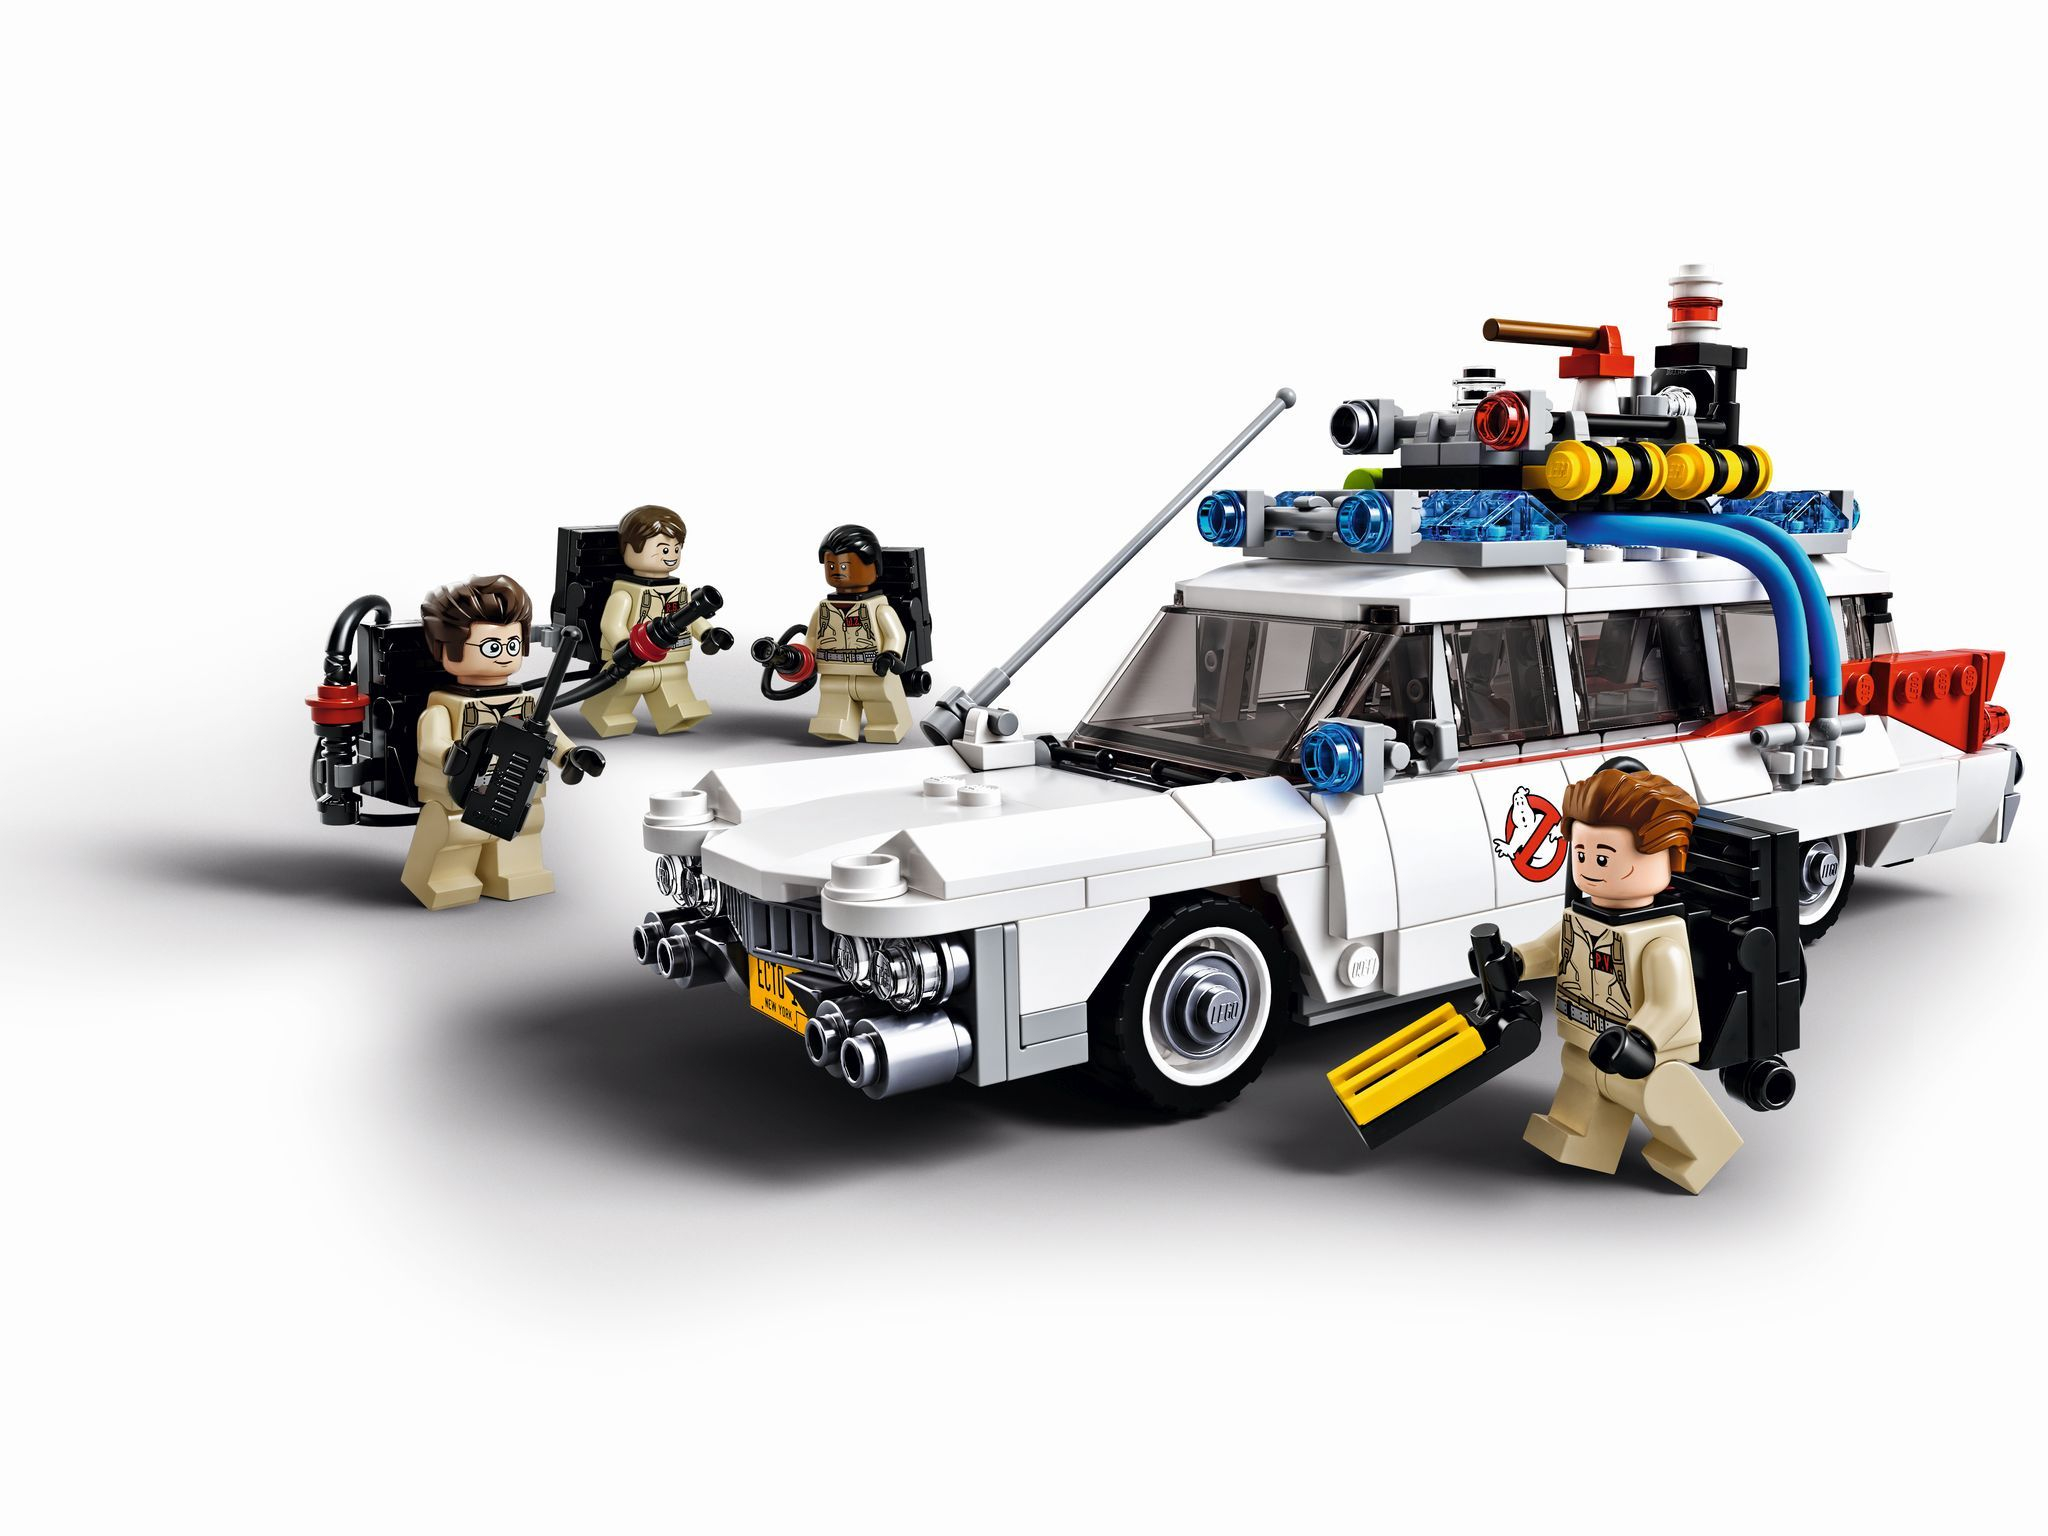 Ghostbusters toys car  Pin by Dries Mahieu on Oh oh Lego  Pinterest  Lego and Ghostbusters